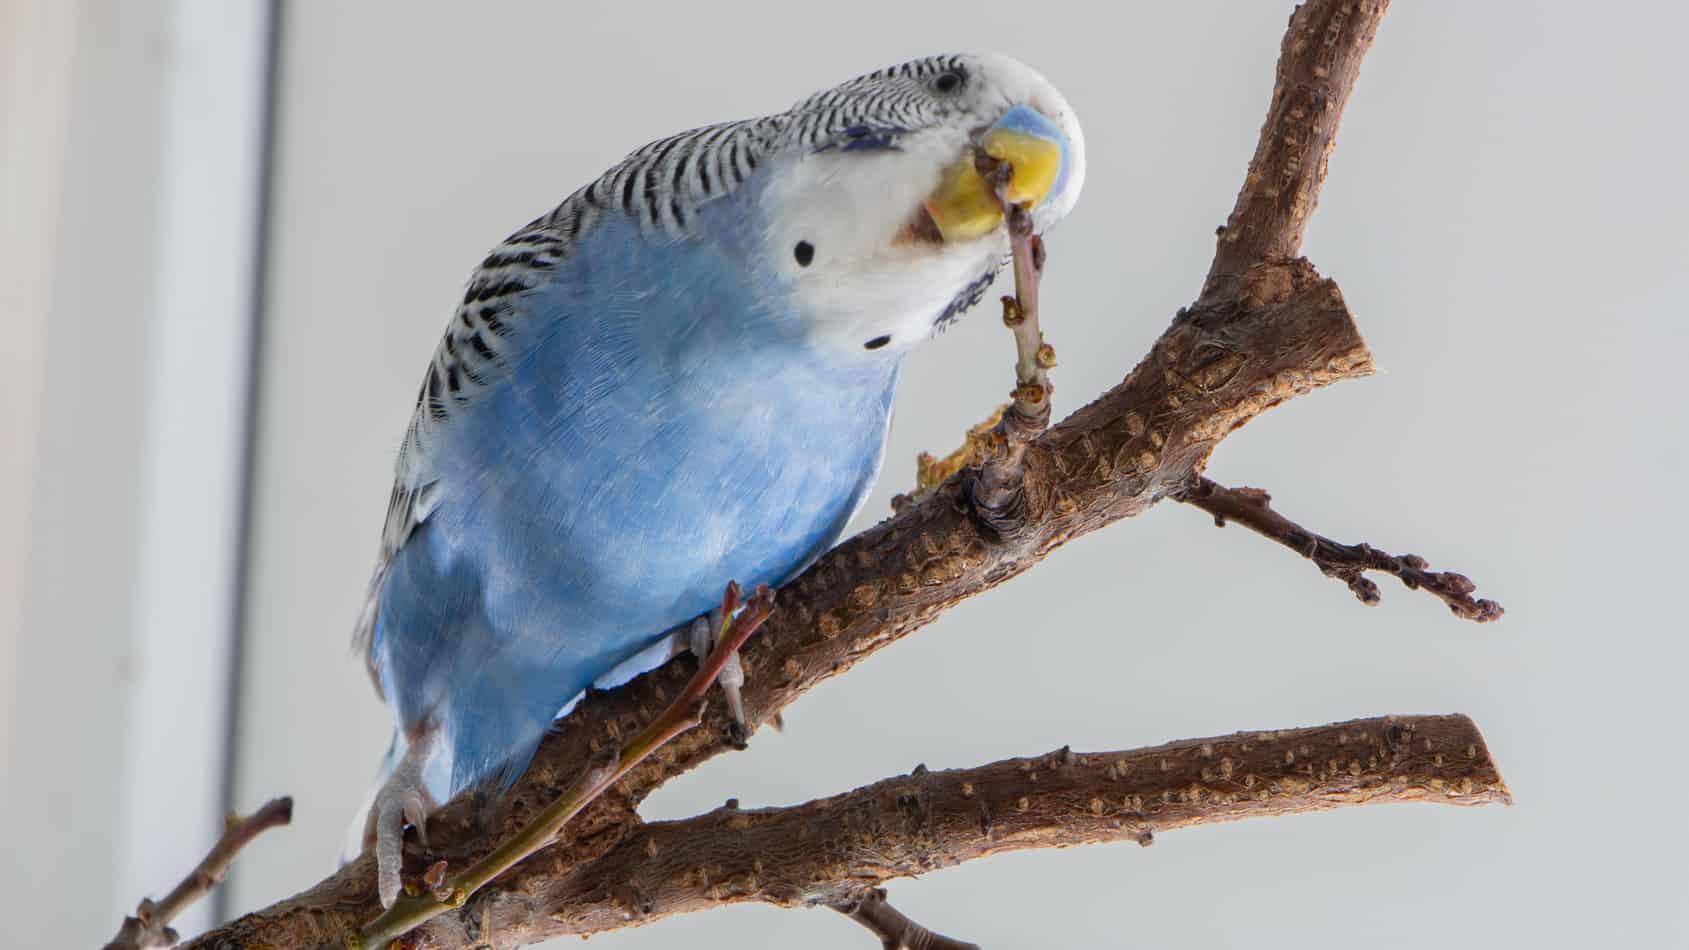 Petco Parakeets: 9 Things to Know Before You Buy